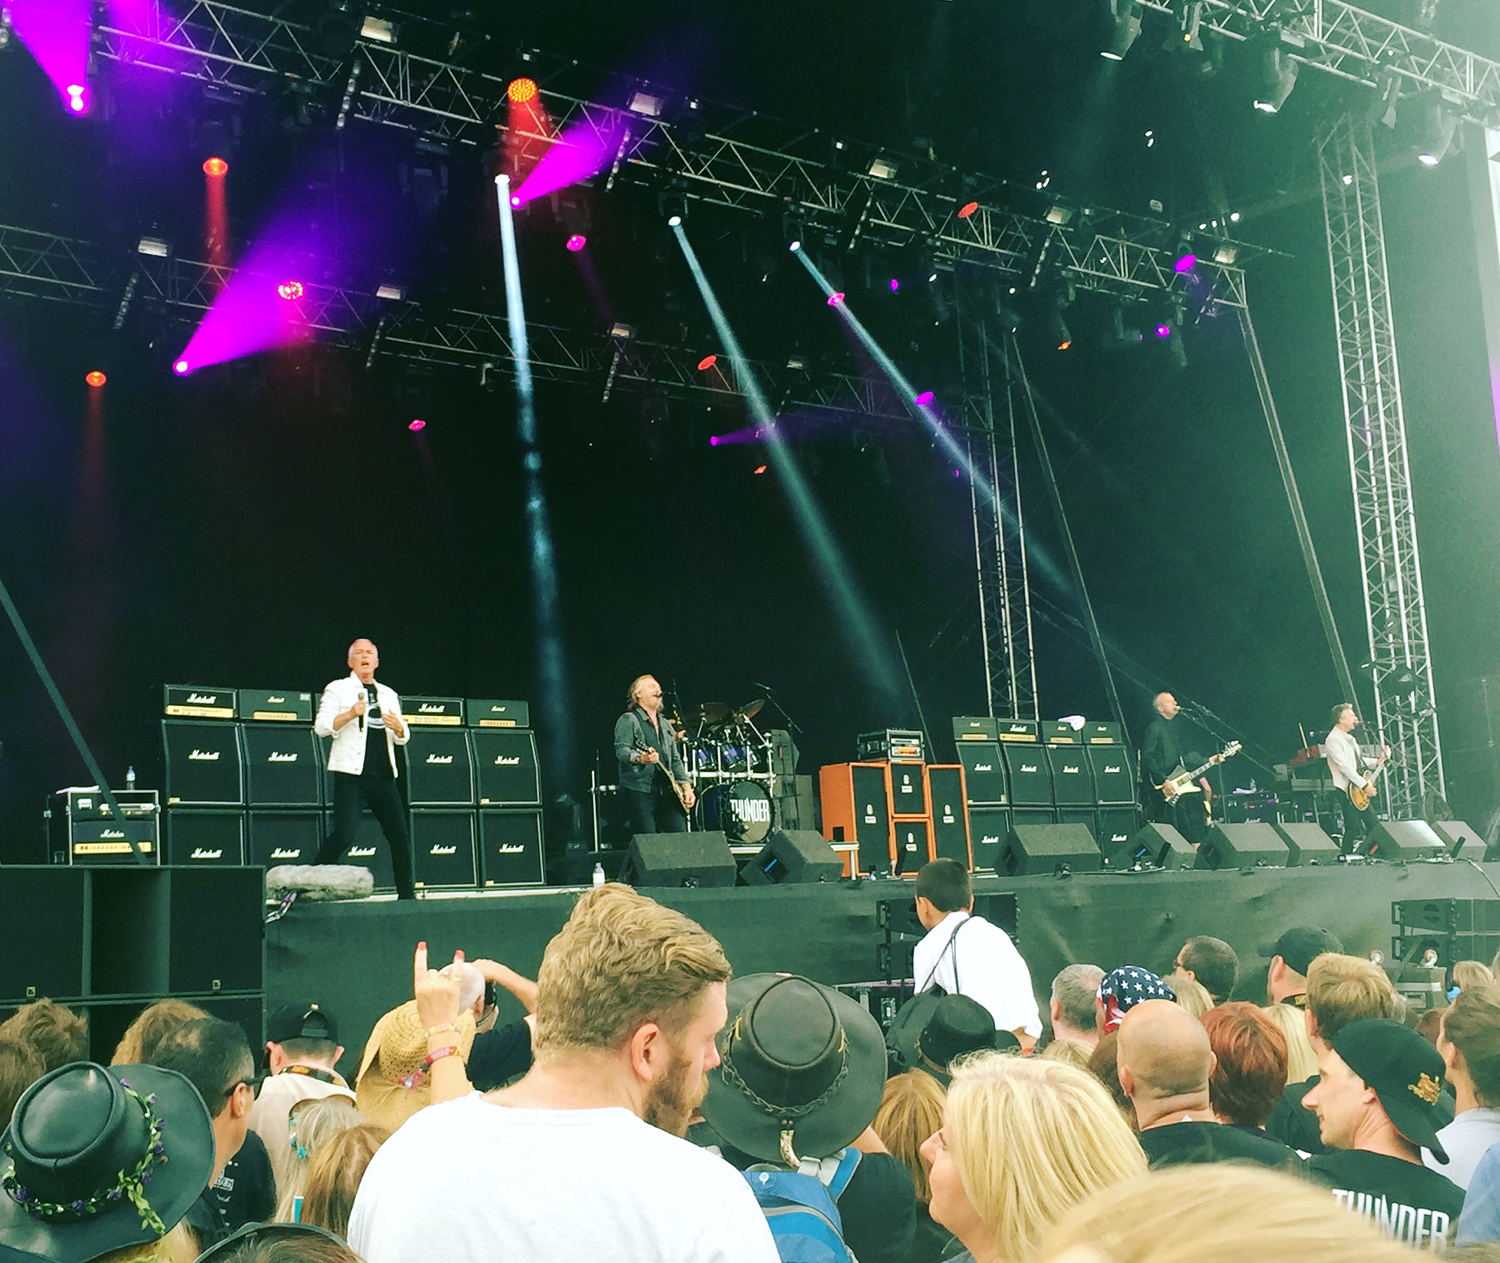 Thunder on stage at Ramblin' Man Fair